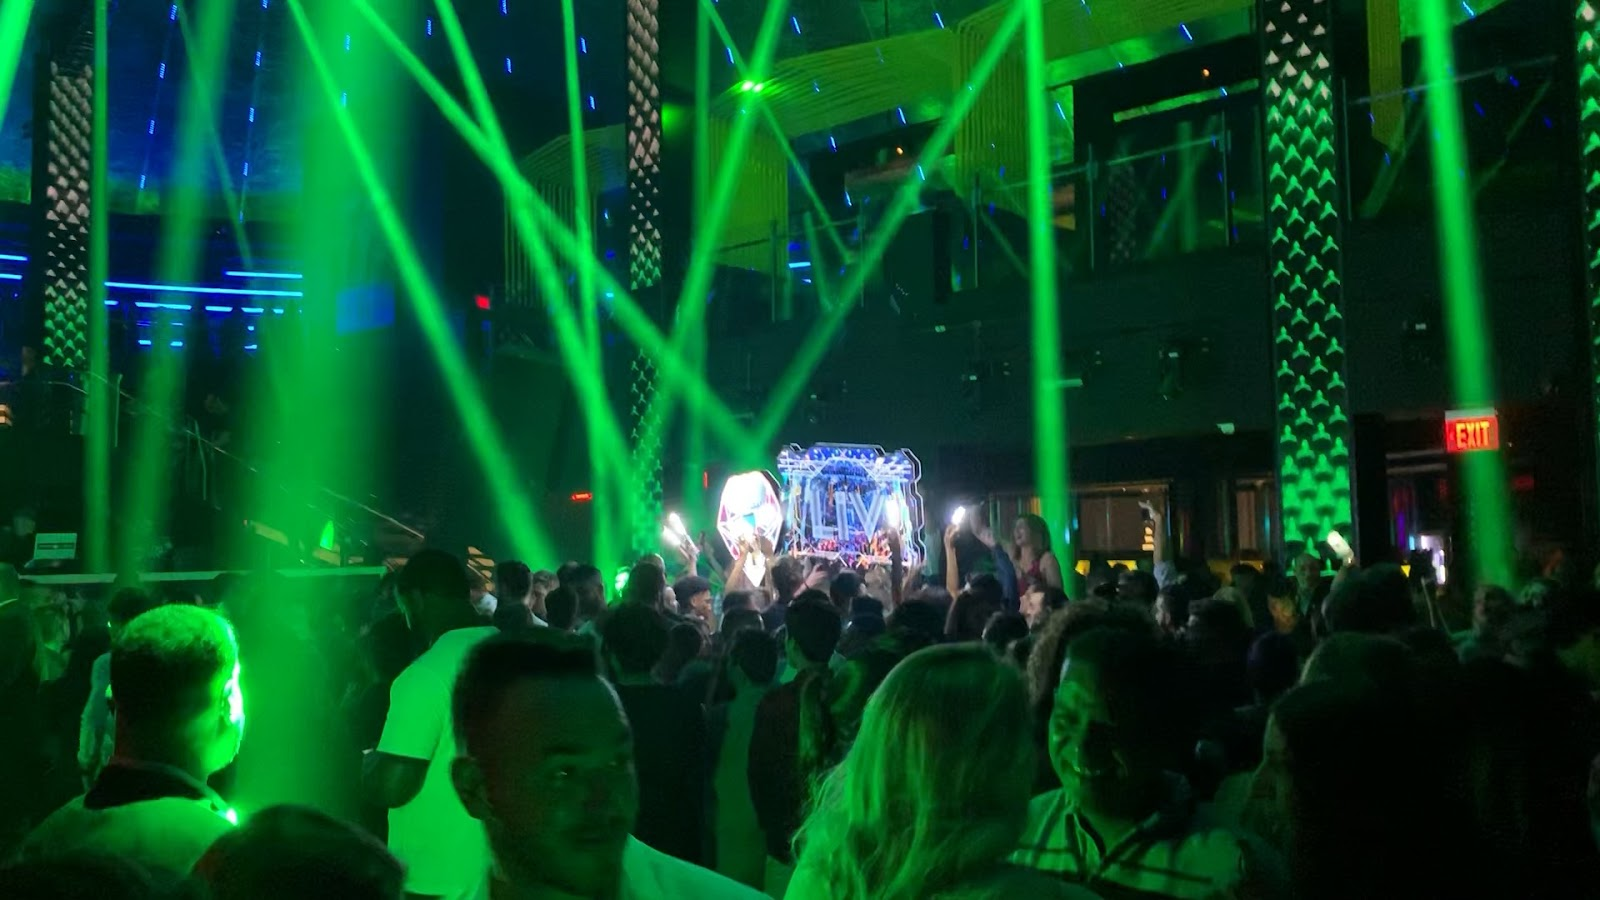 Miami Beach VIP Party LIV Nightclub Spring Break